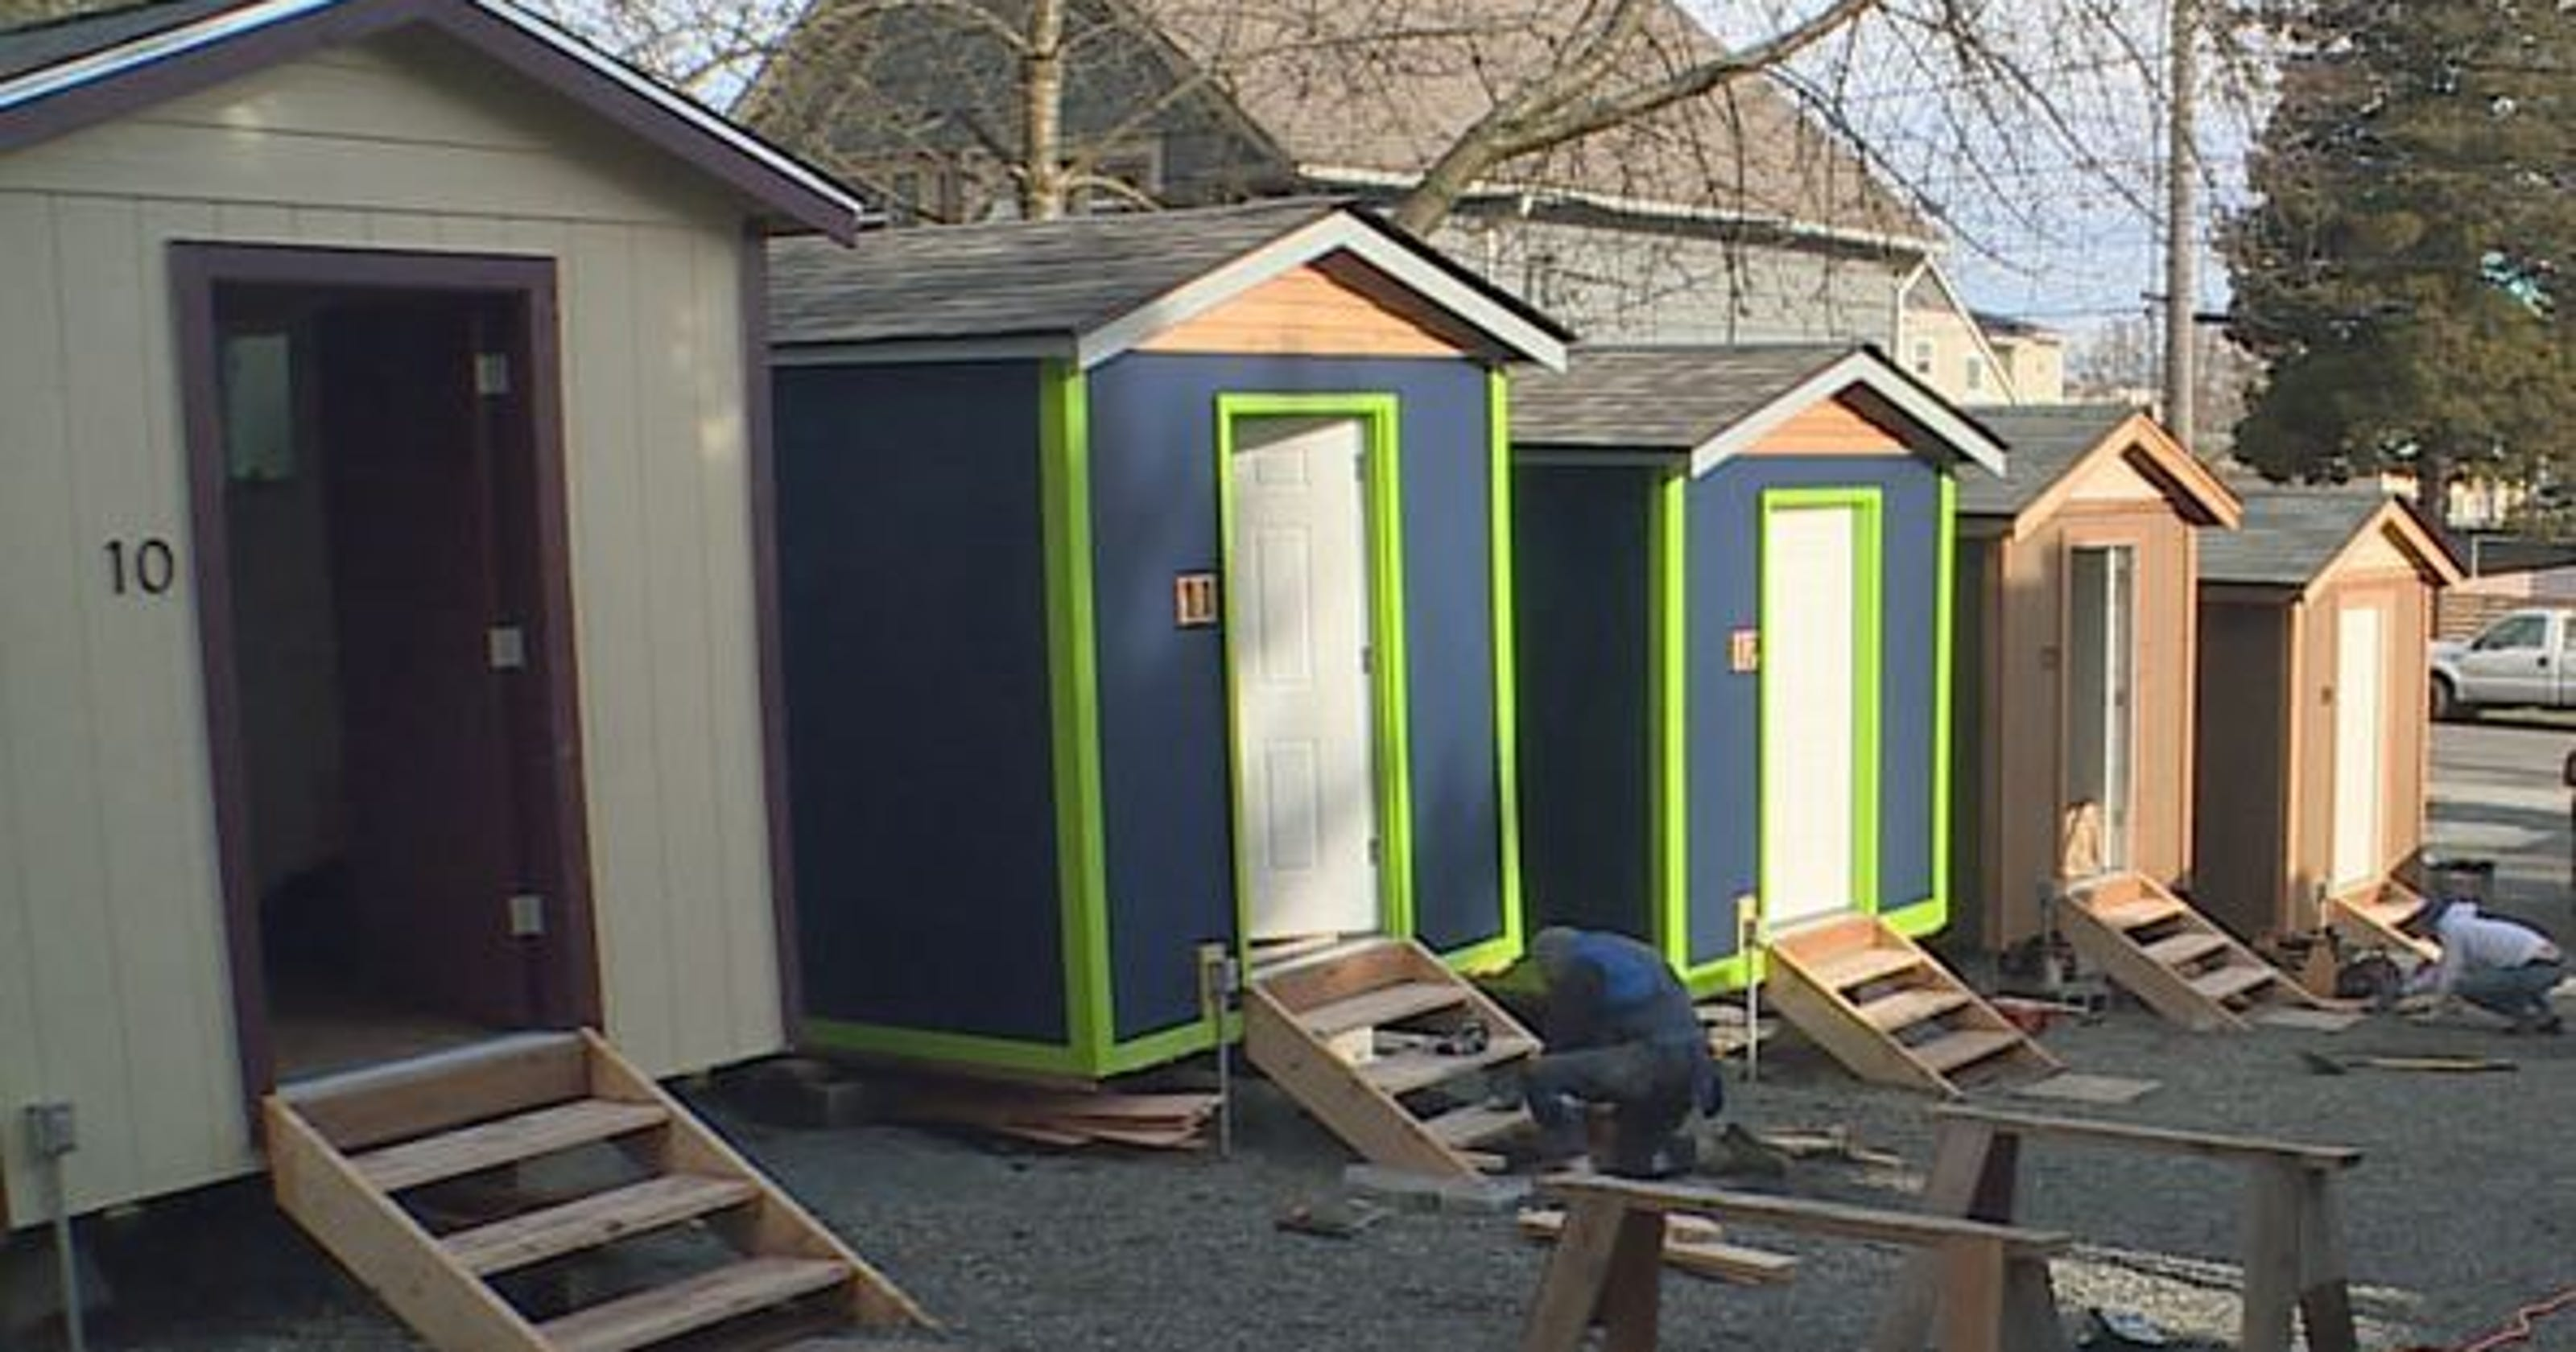 Tiny Home Designs: Tiny Houses Could Help Homeless Community In Reno